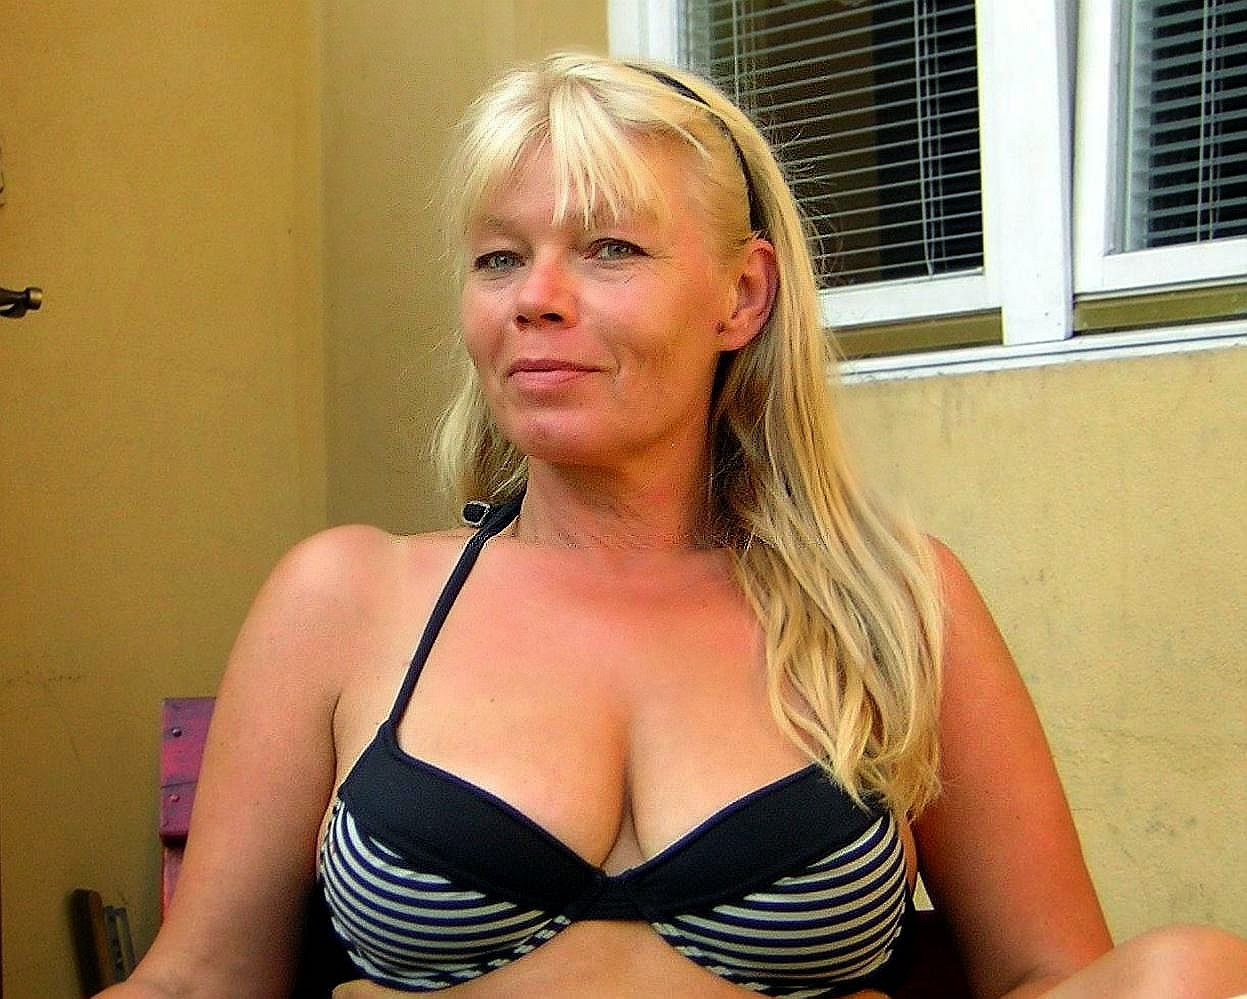 I love mature women-7592